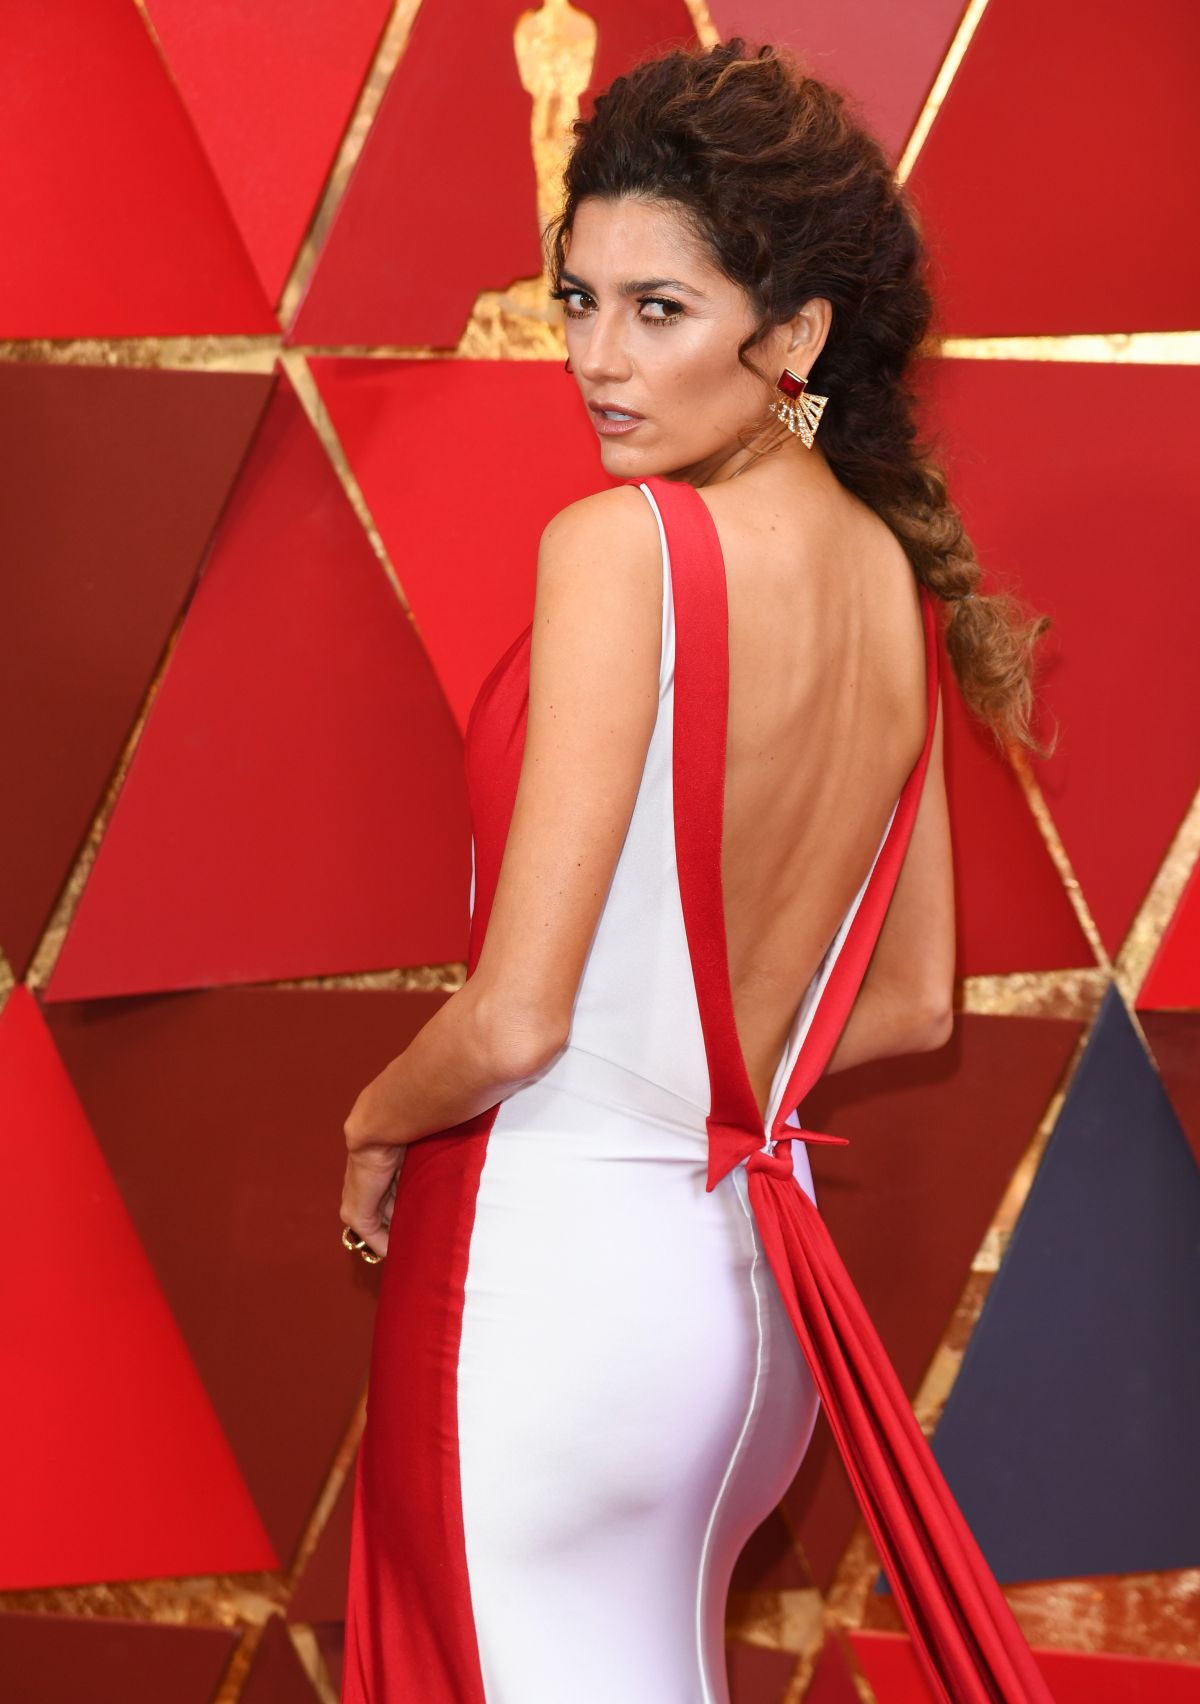 Blanca Blanco At Th Annual Academy Awards In Hollywood